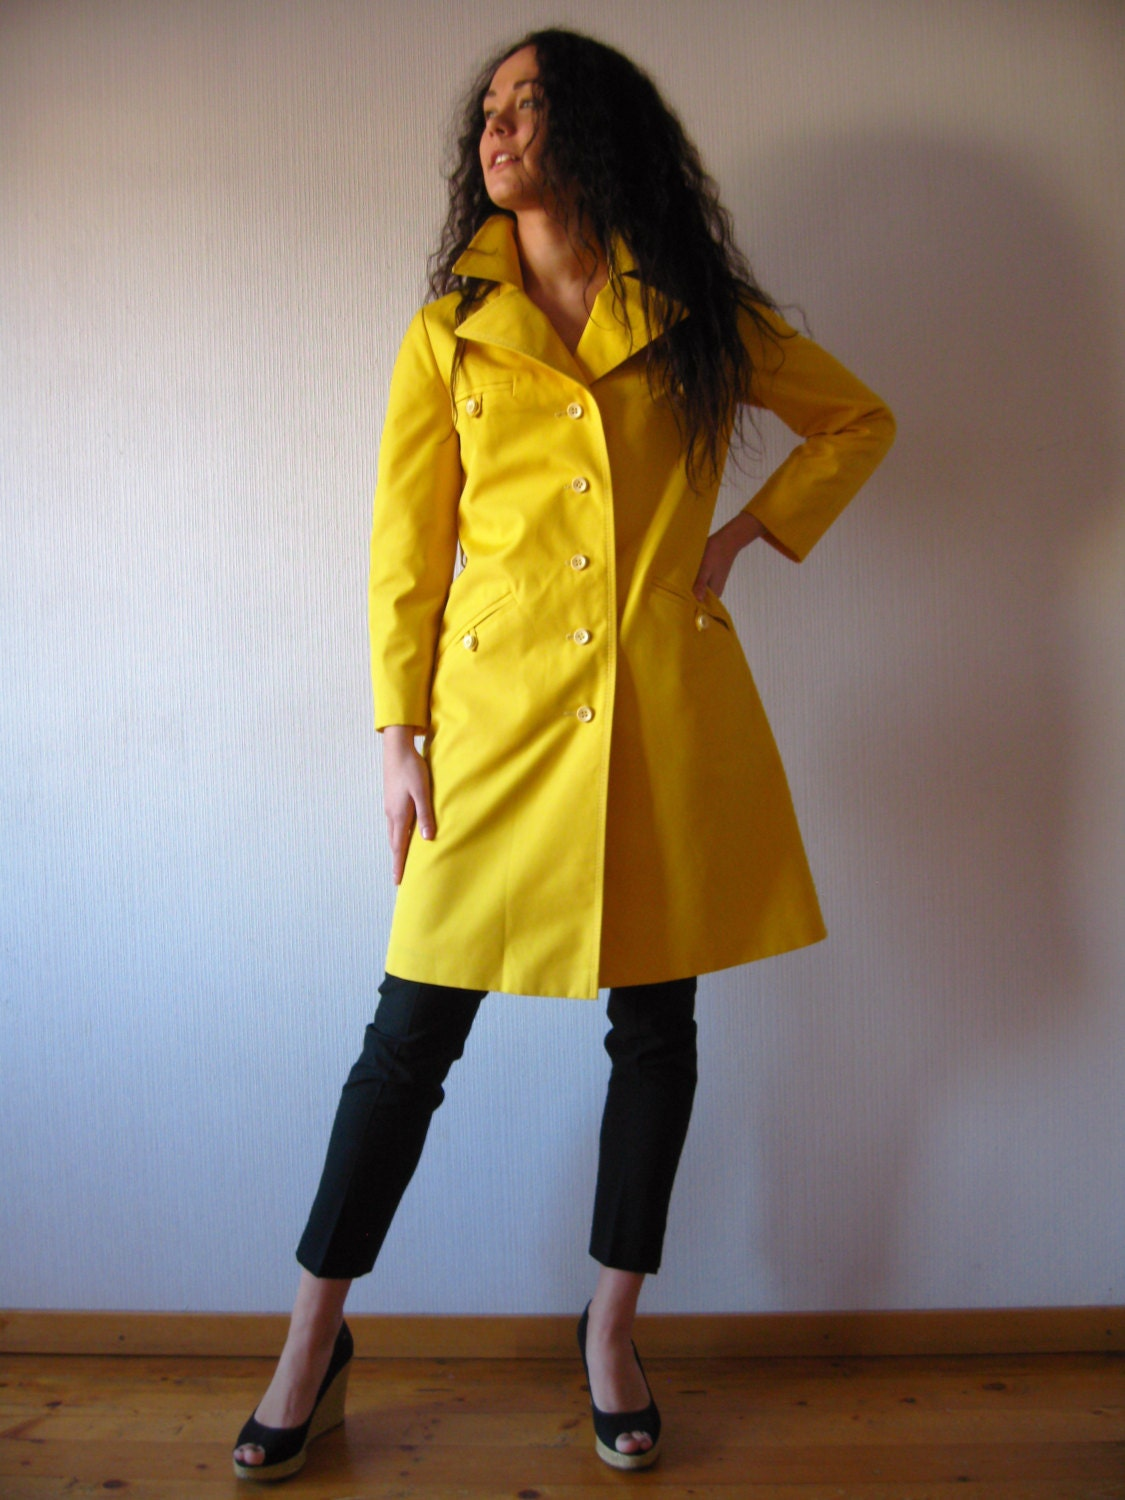 Vintage 70s Bright Yellow Trench Coat Womens Raincoat Lining